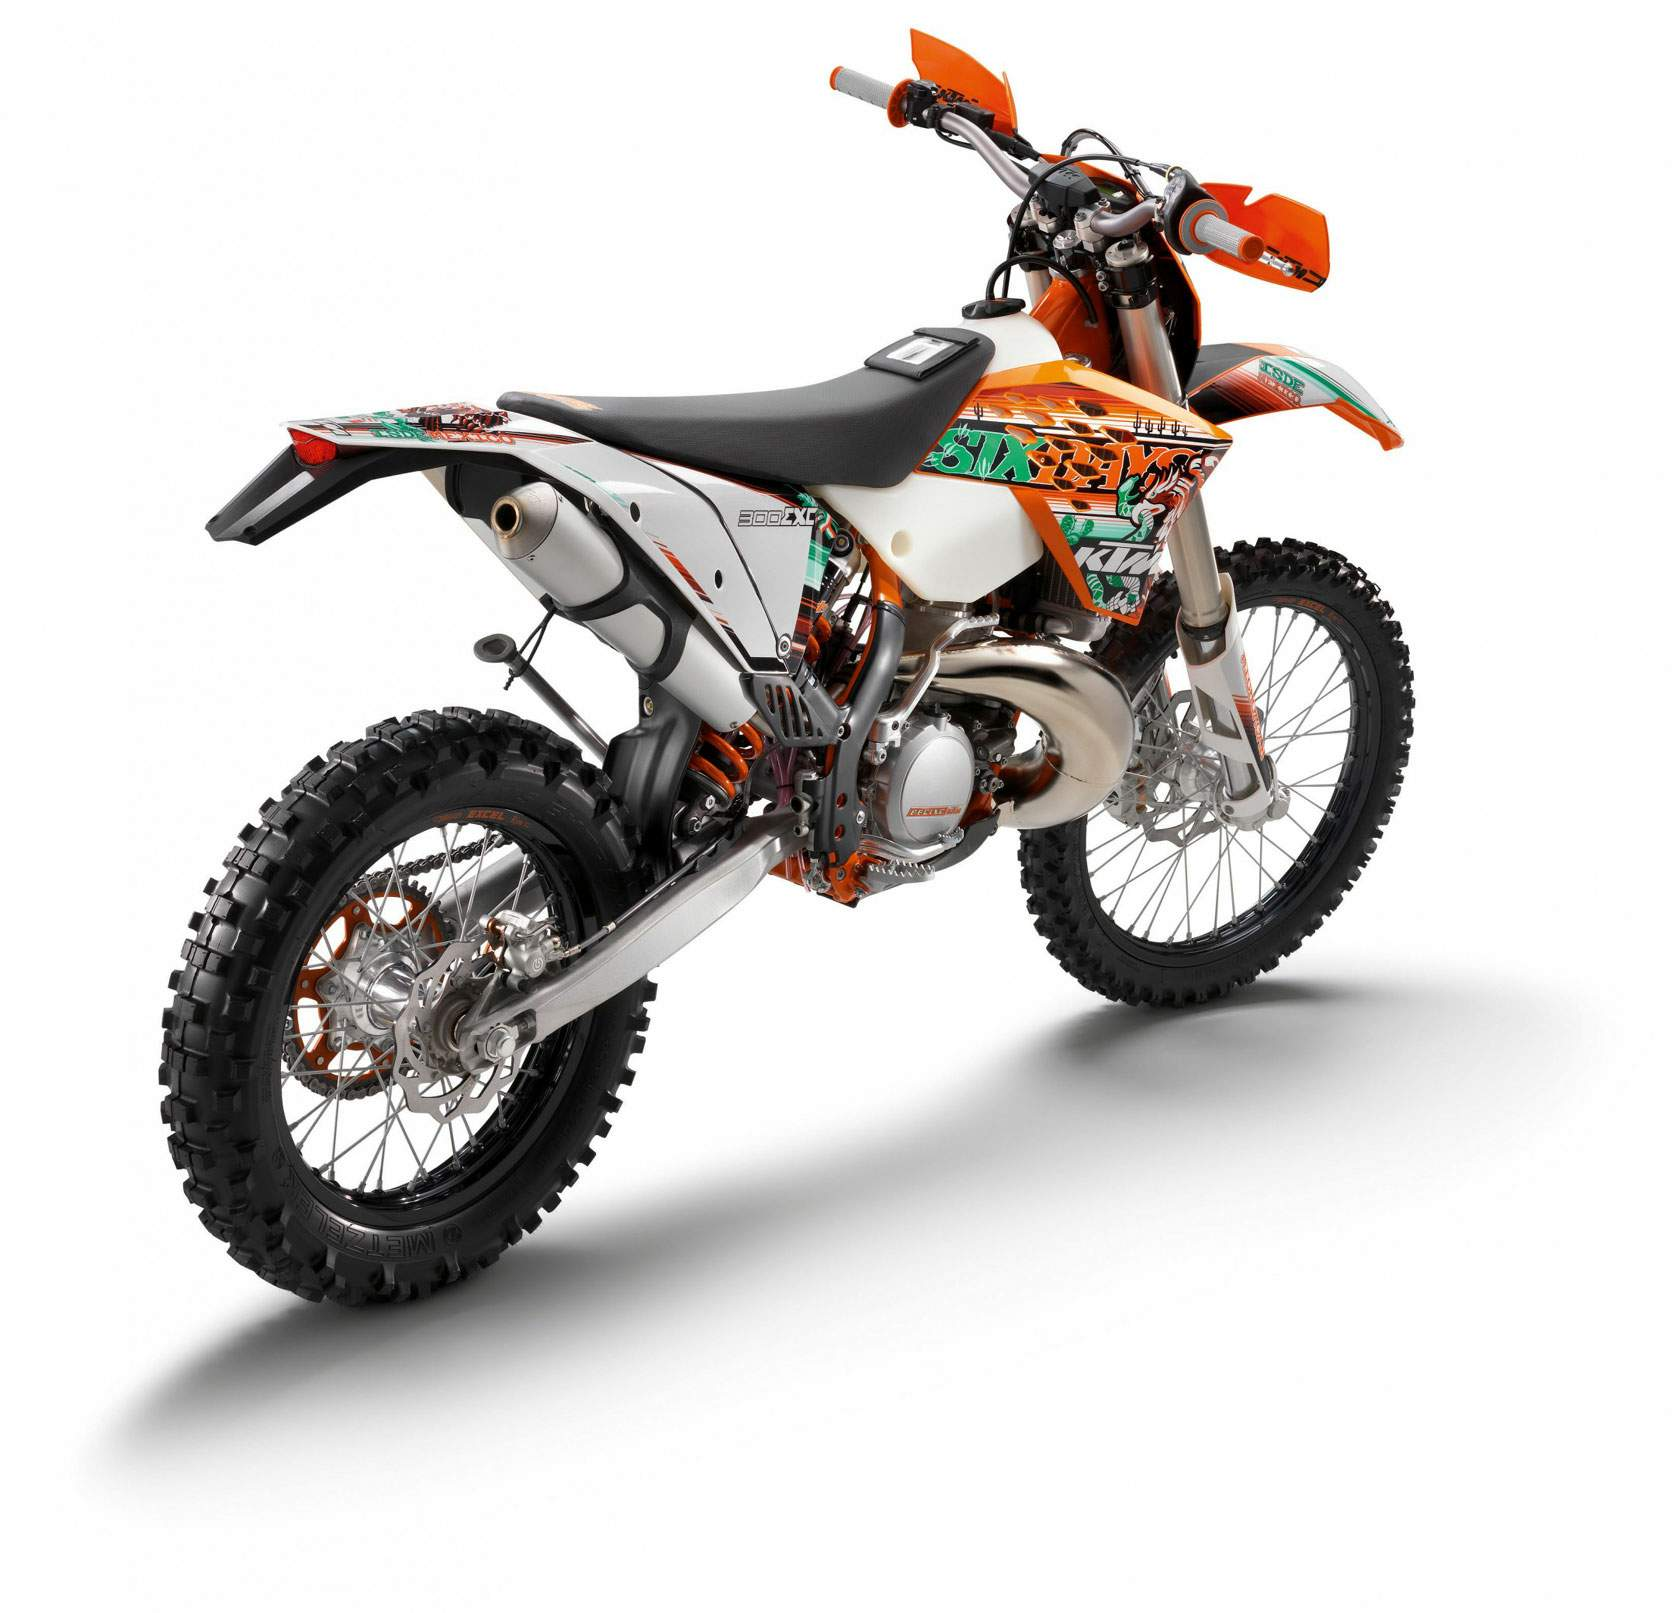 Super Ktm 300 Exc E Enduro Six Days Gmtry Best Dining Table And Chair Ideas Images Gmtryco